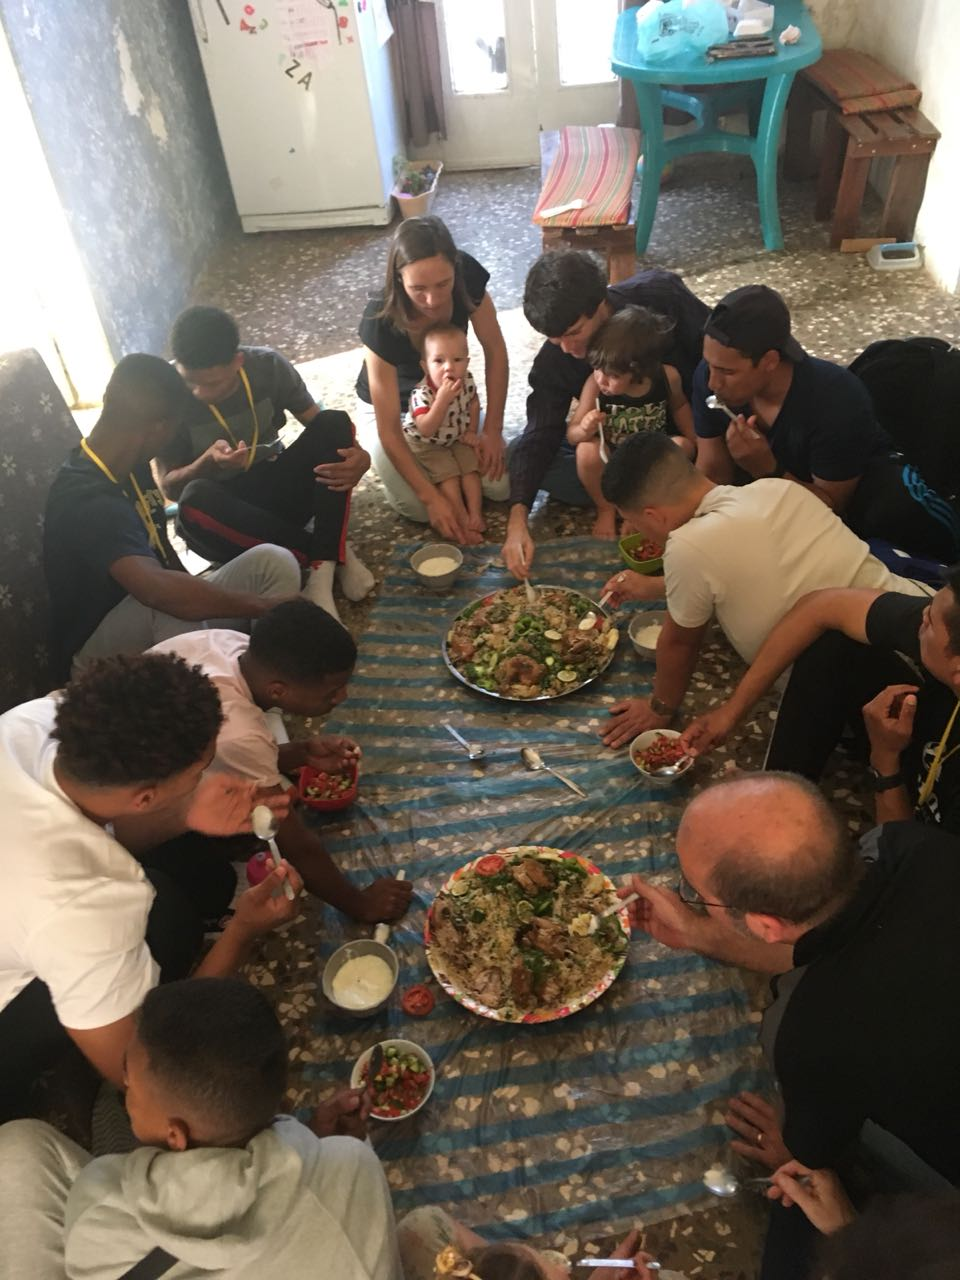 New Eats - Enjoying some tradition Middle Eastern food, this was our team's first Syrian meal on the floor.